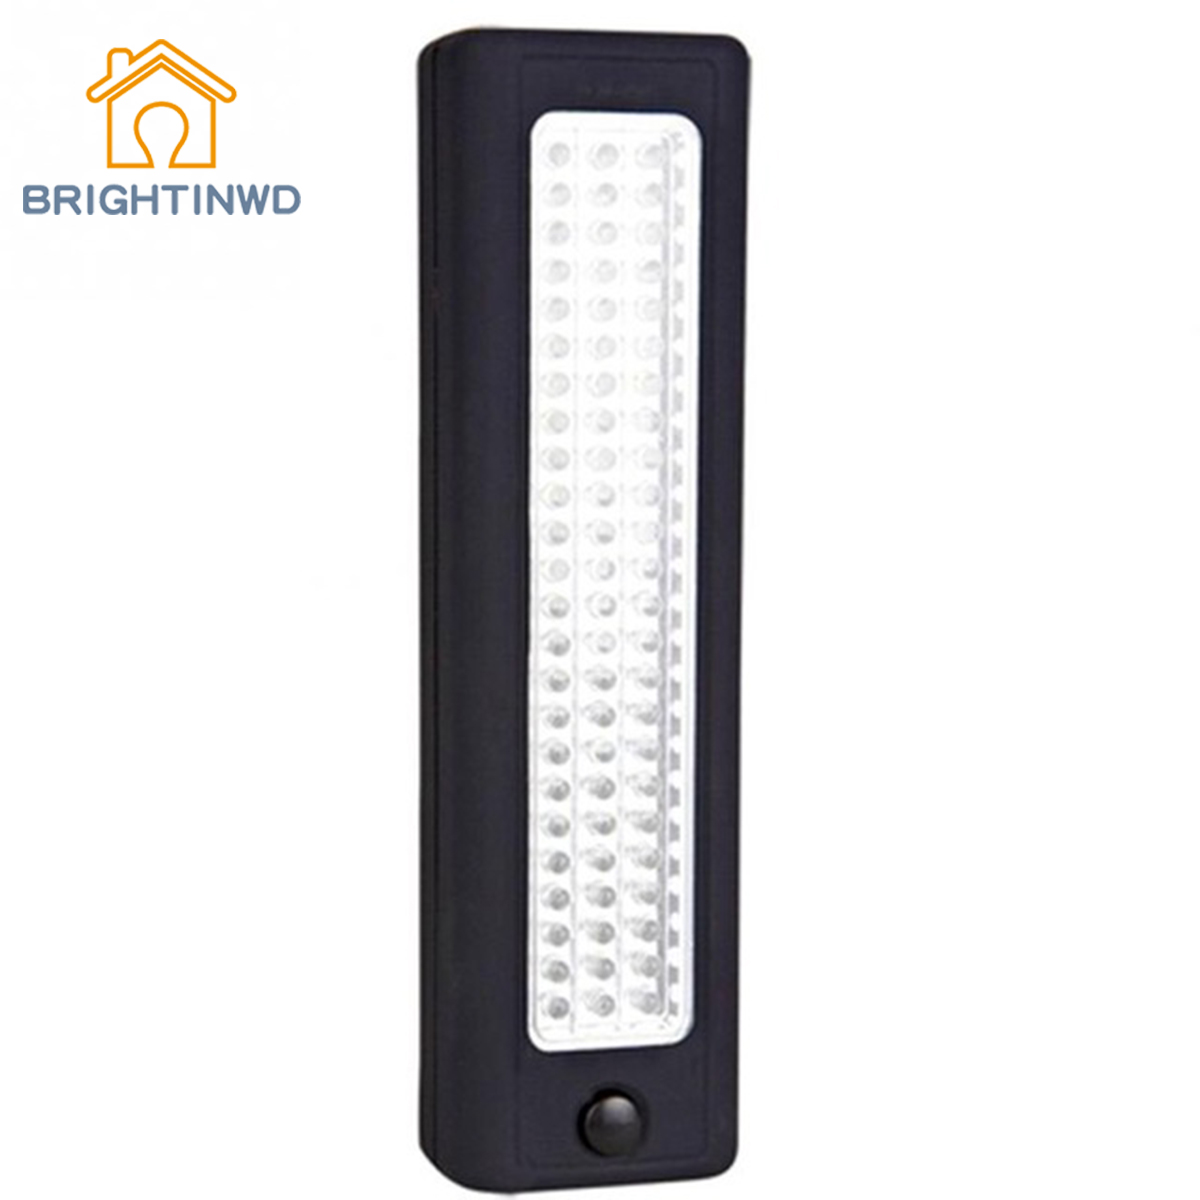 BRIGHTINWD Service Bright Light 72 LED Working Lamp Portable Outdoor Camping Lights 6V 4.5W Overhaul Flashlight